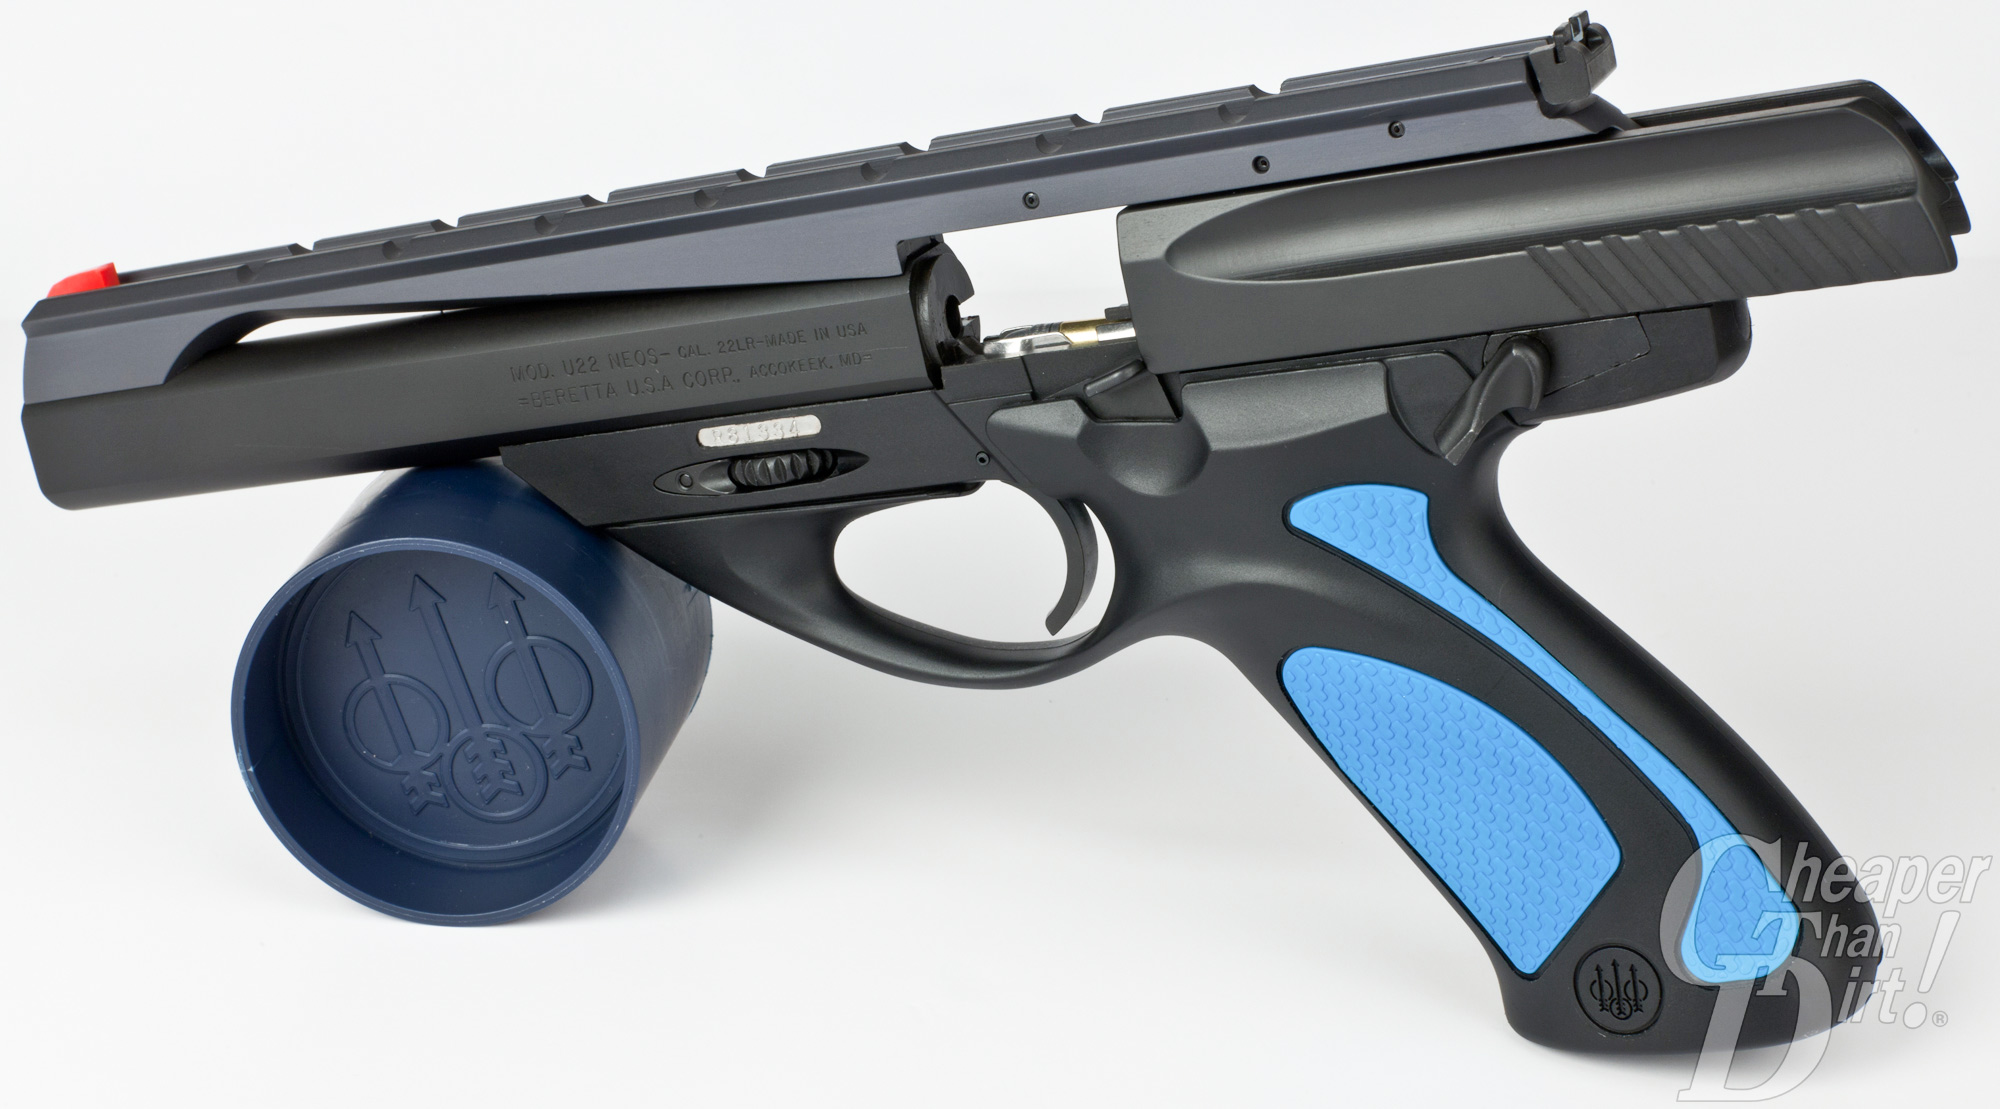 Beretta U22 Neos Review — The Future of Rimfire Handguns?